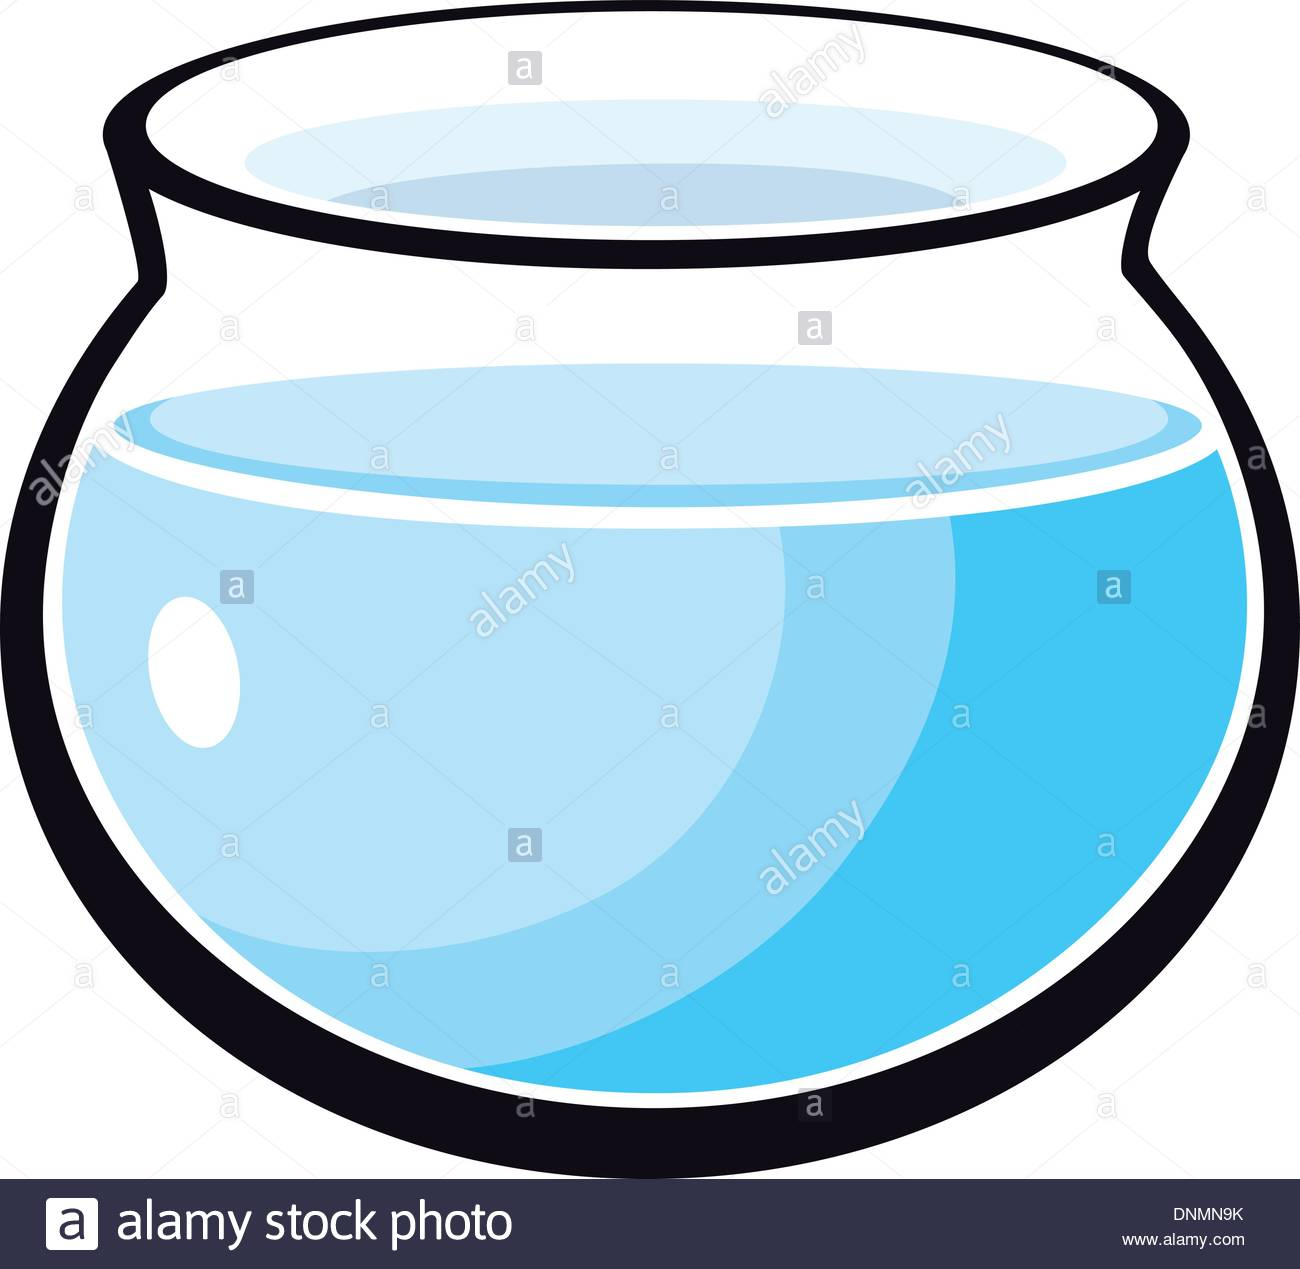 1300x1269 Cartoon Illustration Of Fish Bowl With Water Stock Vector Art